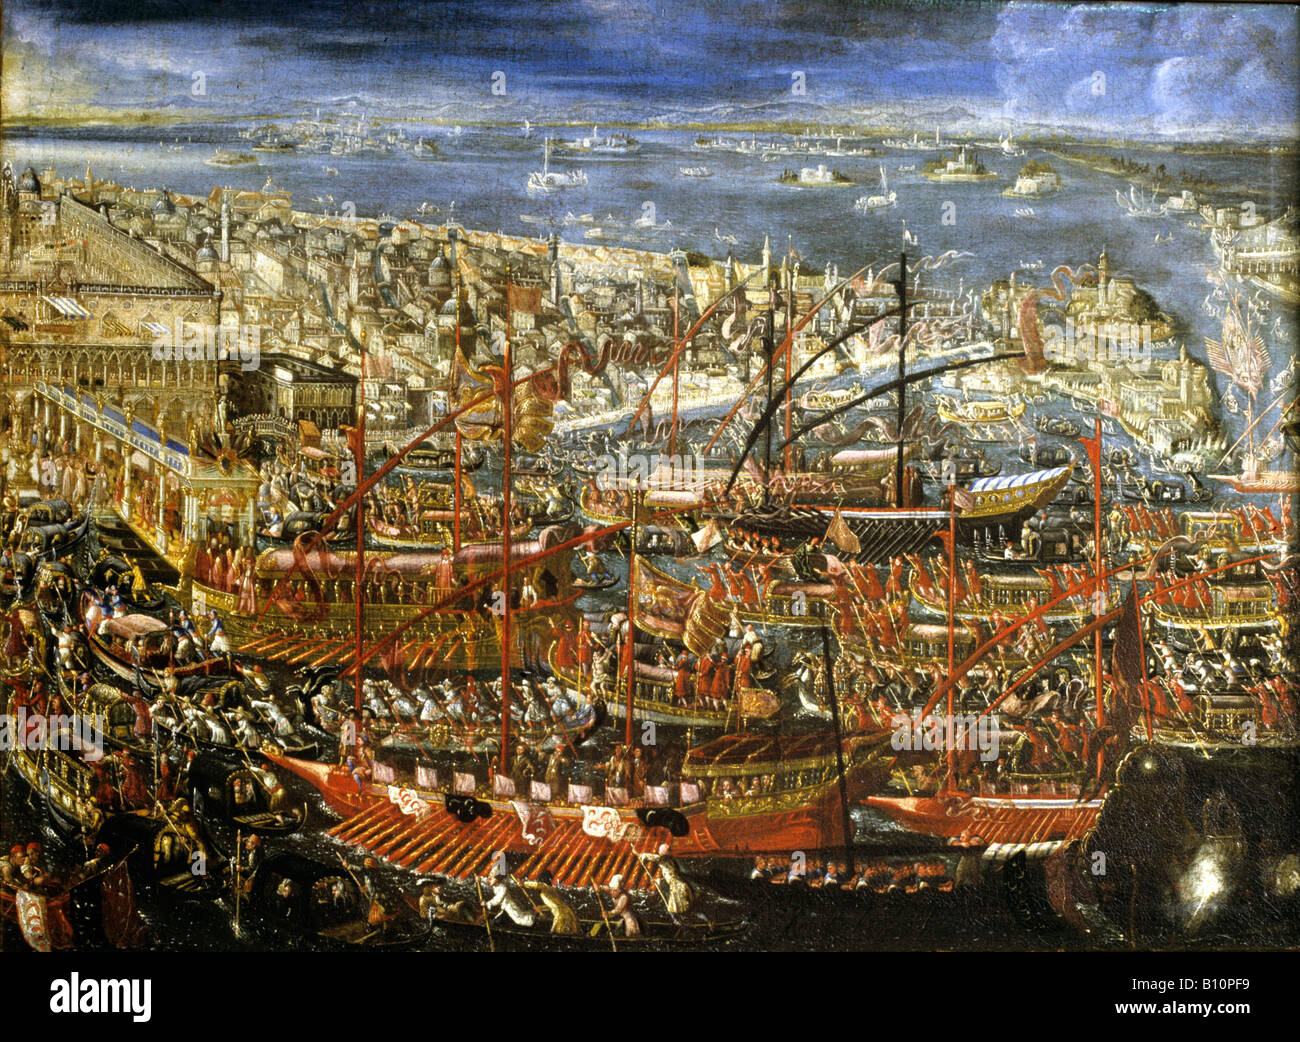 Painting Venetian barges in a ceremony on the water 16th cent - Stock Image